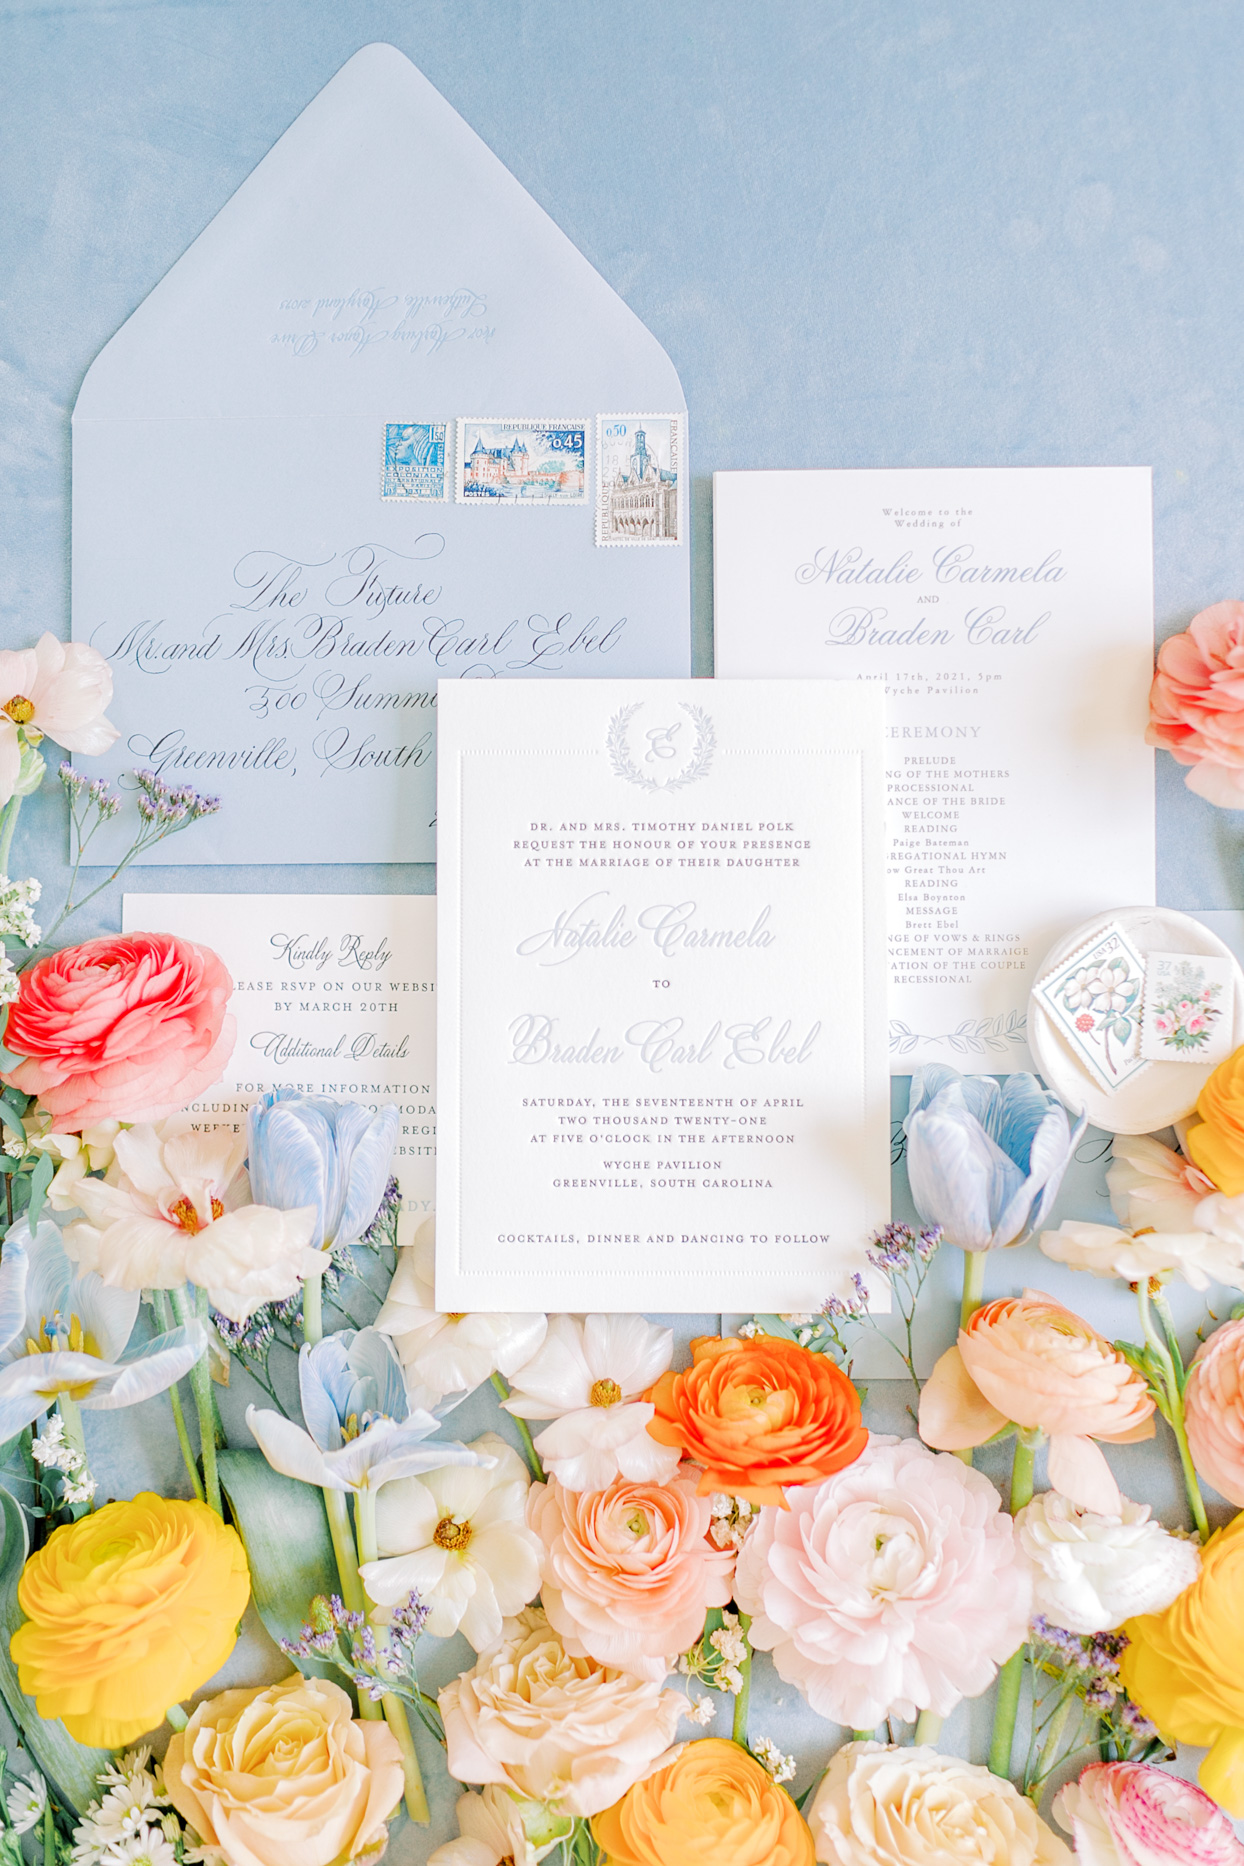 spring hued florals surrounding white and blue wedding stationery